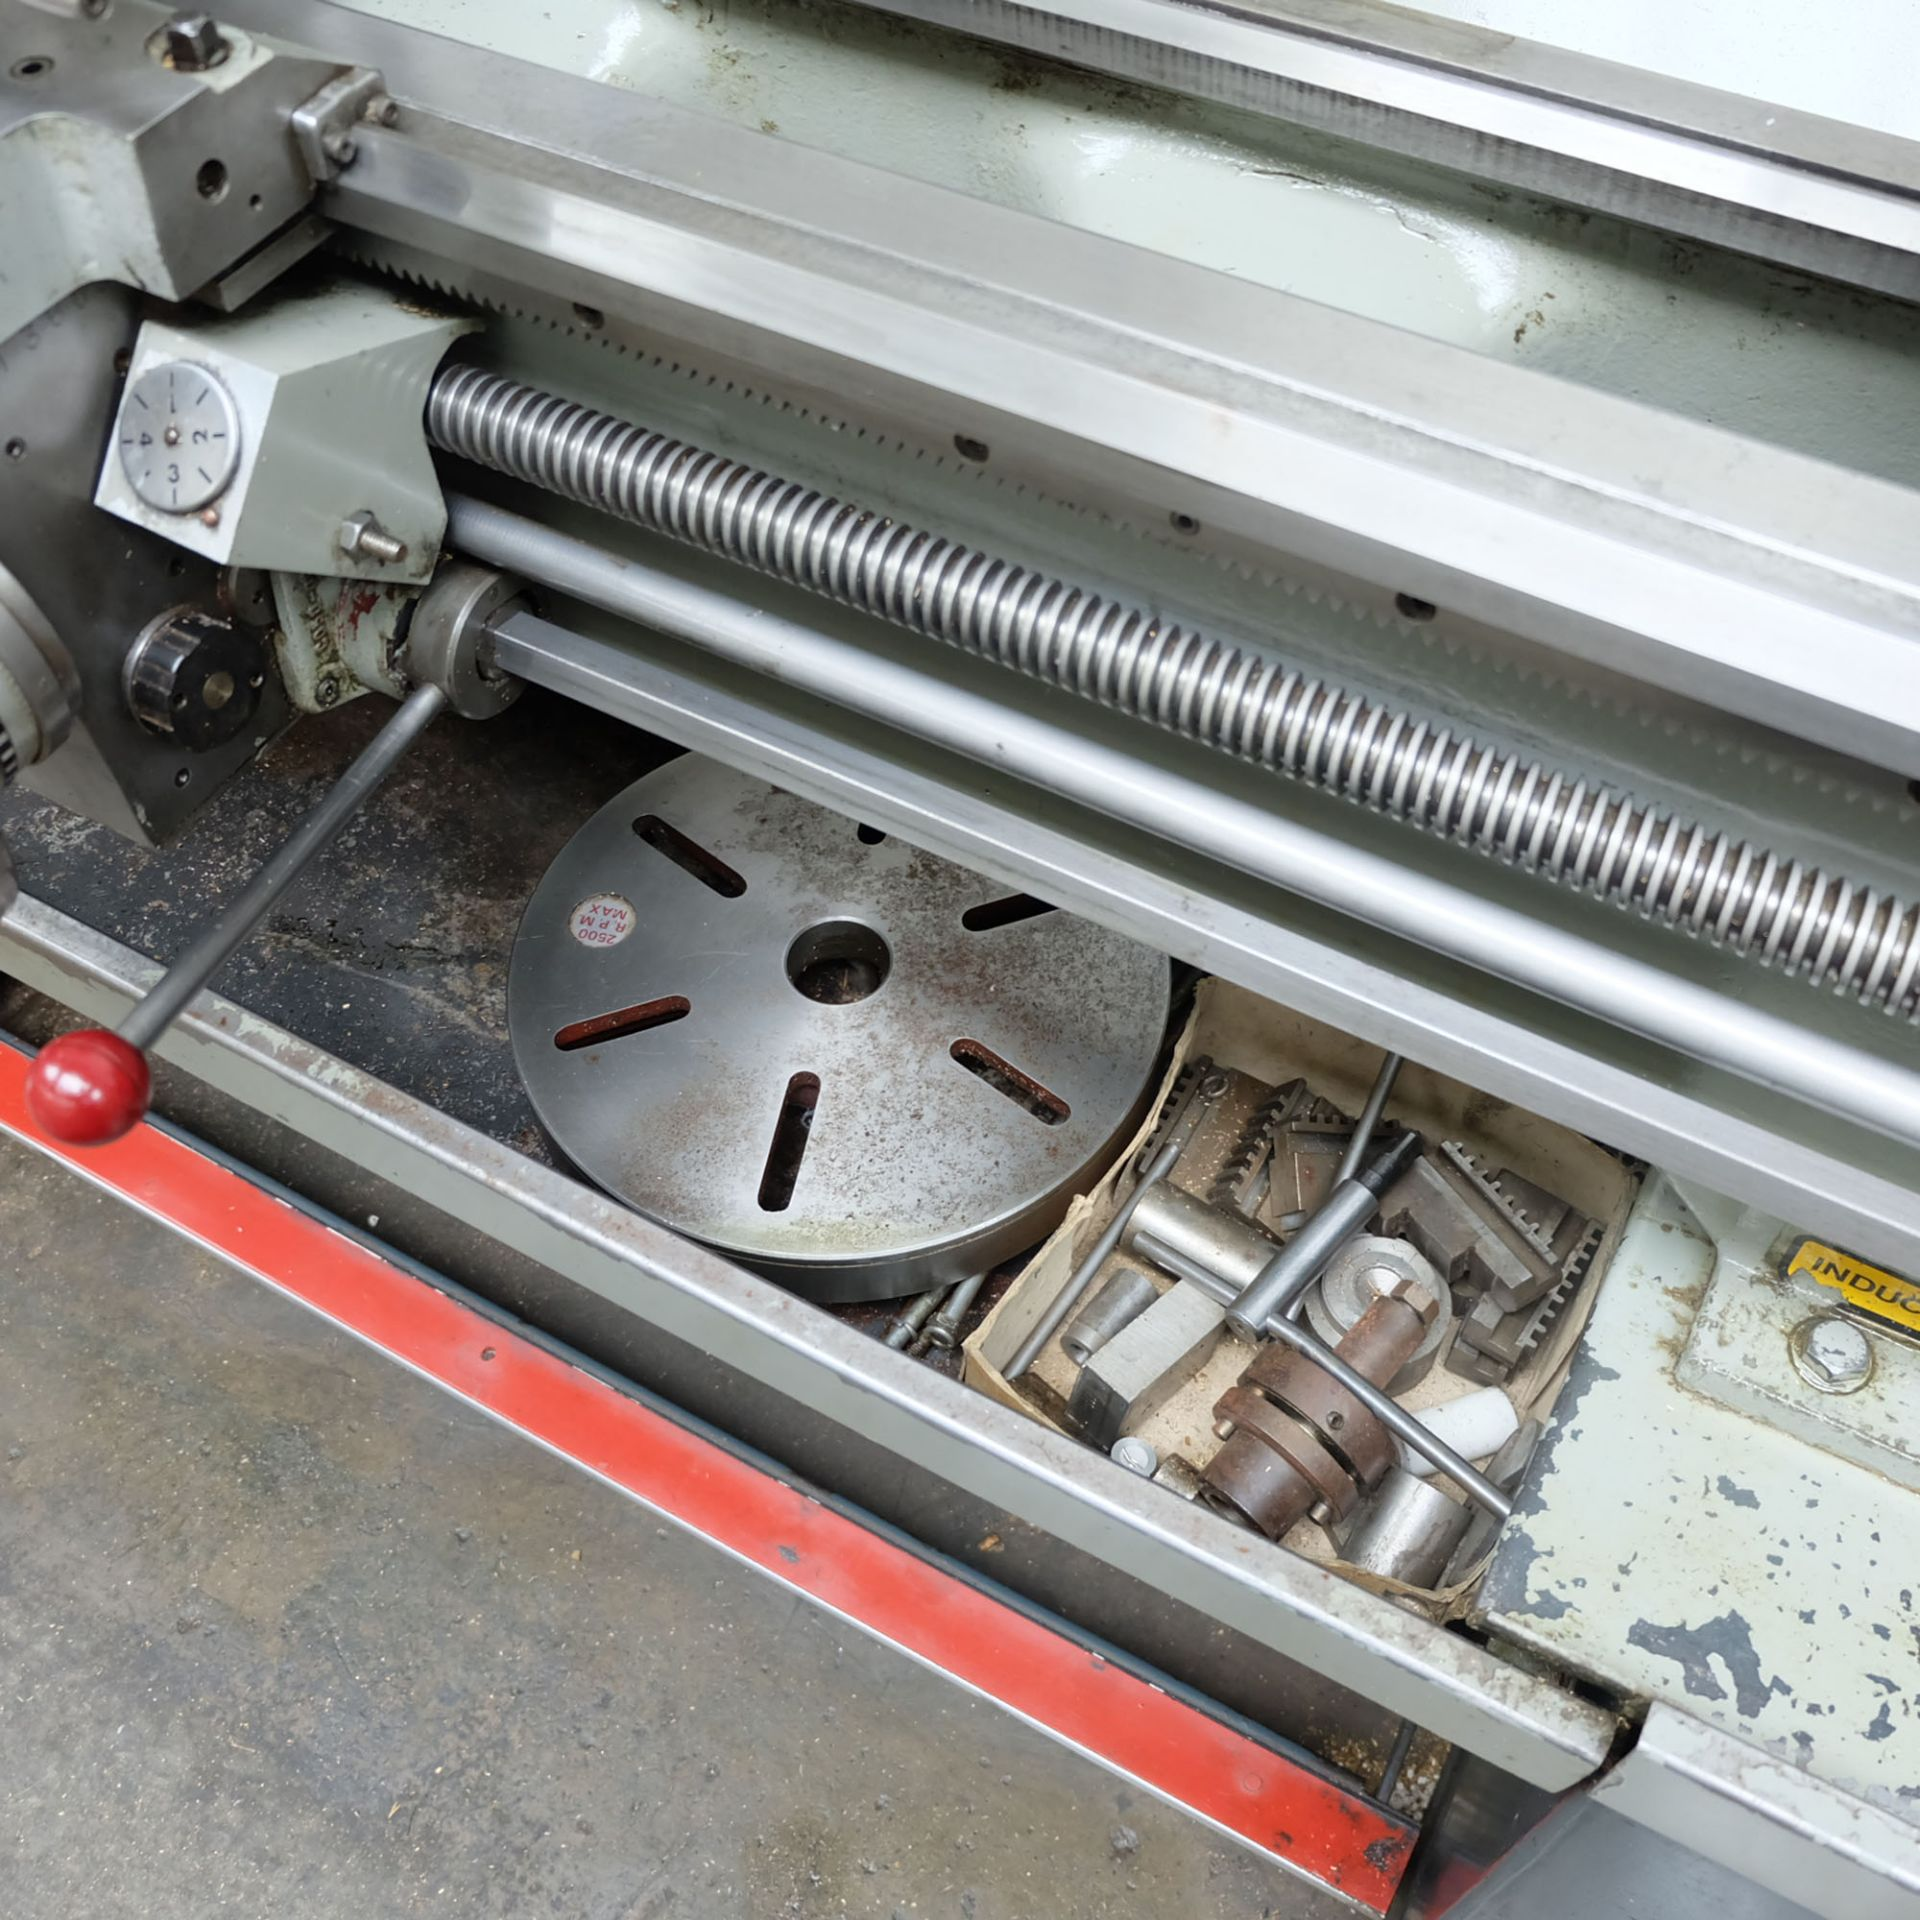 Colchester Master 2500 Gap Bed Centre Lathe. - Image 9 of 10